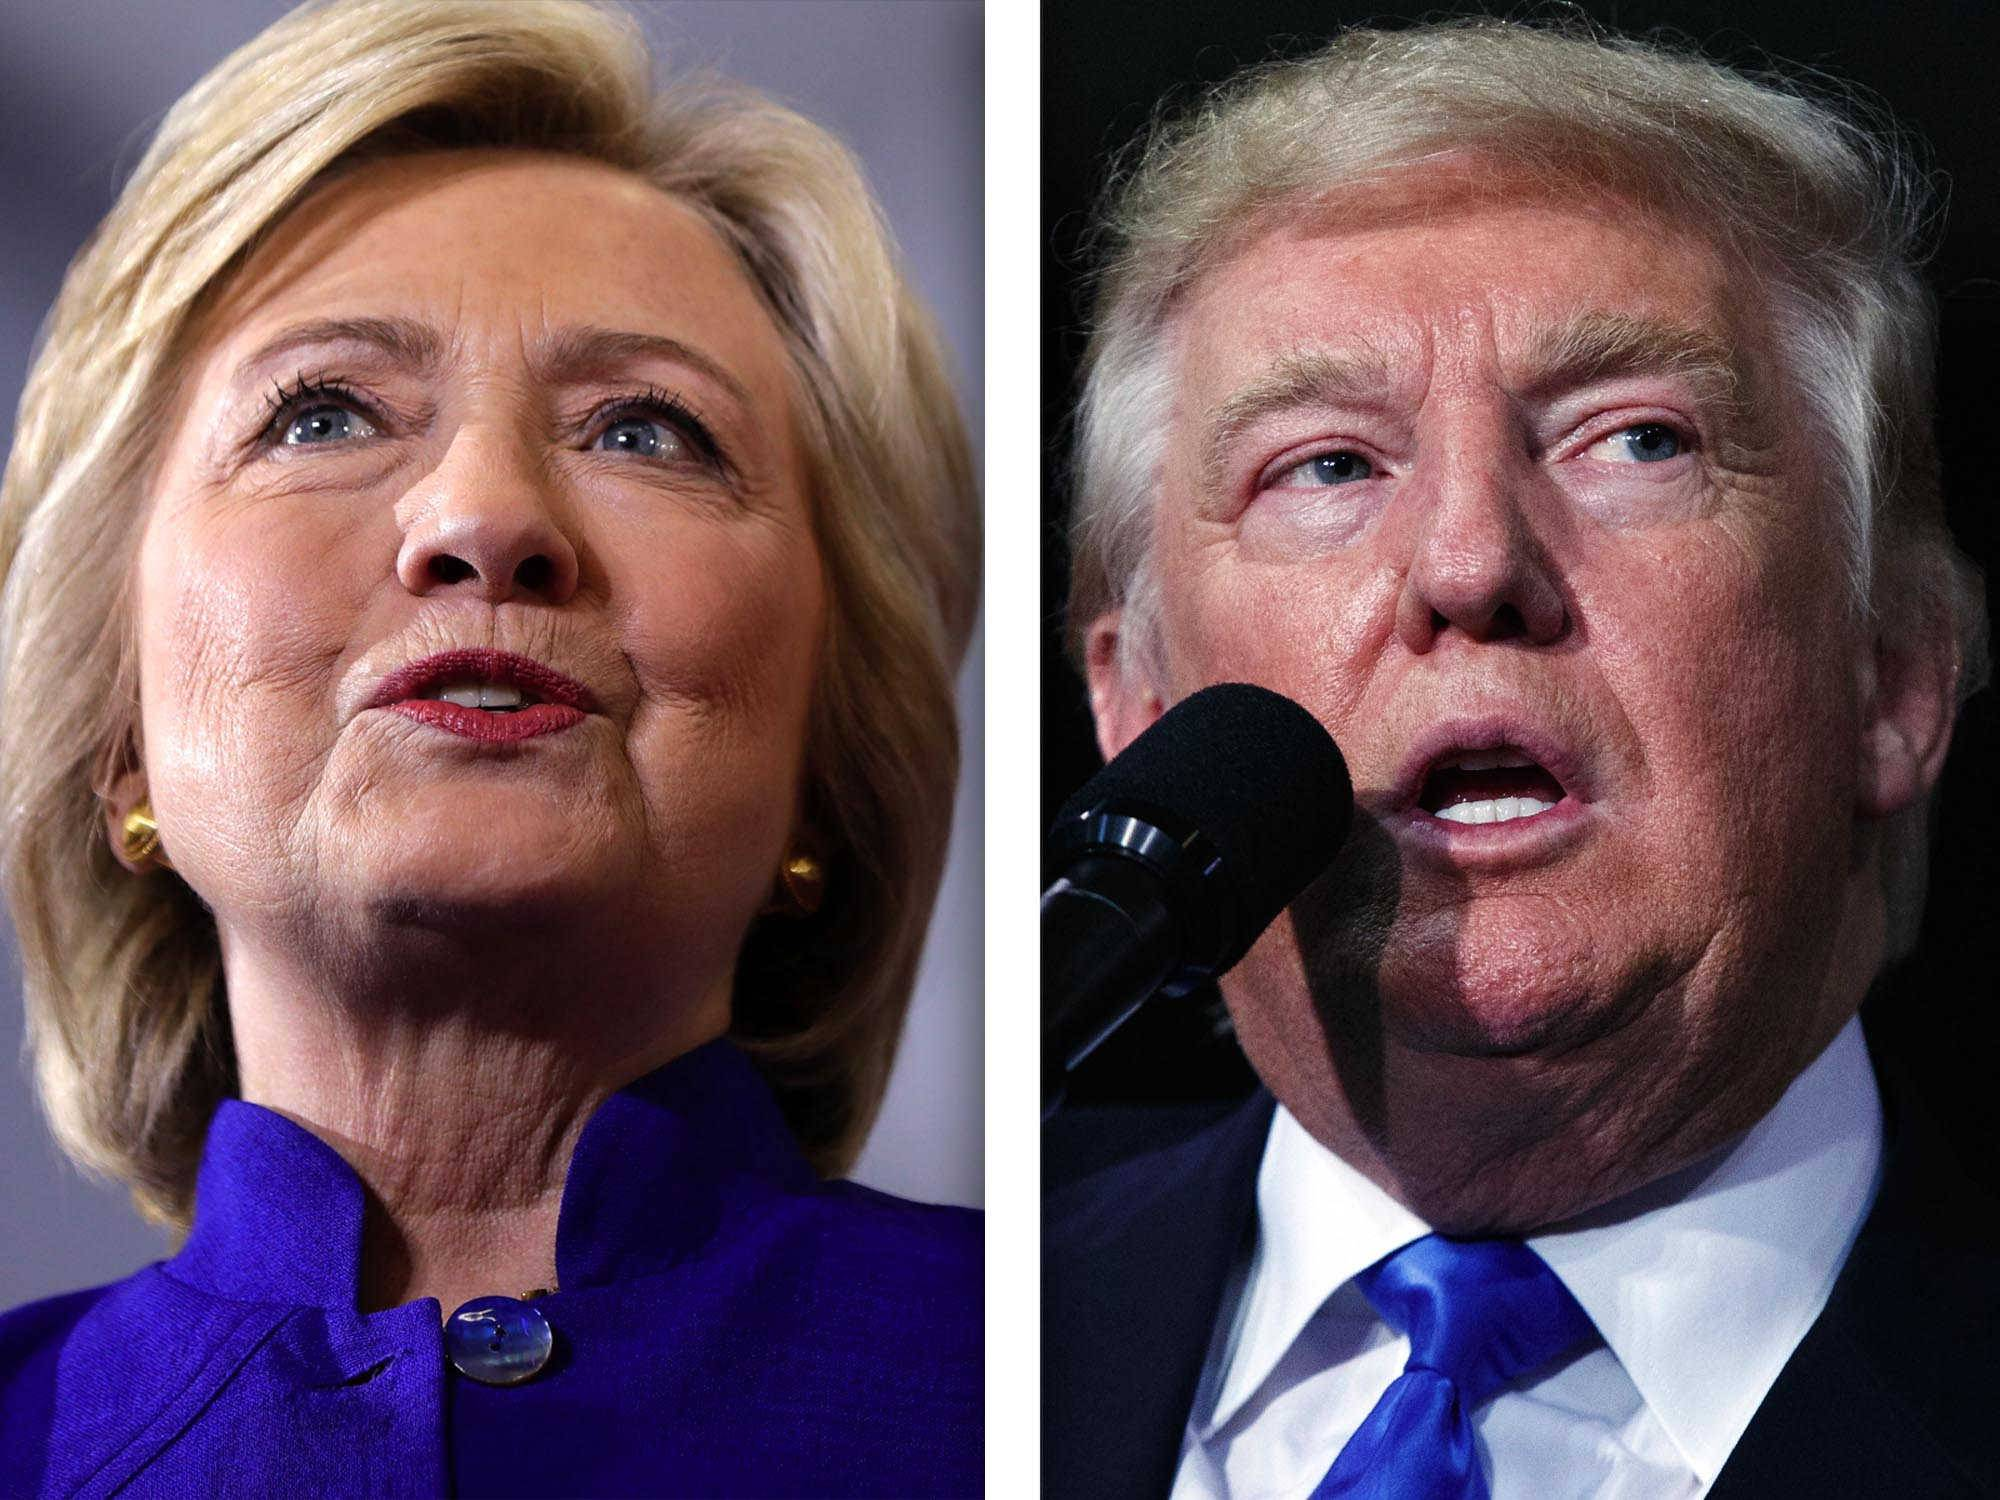 Hillary Clinton, left, and Donald Trump, right, are candidates for President of the United States.